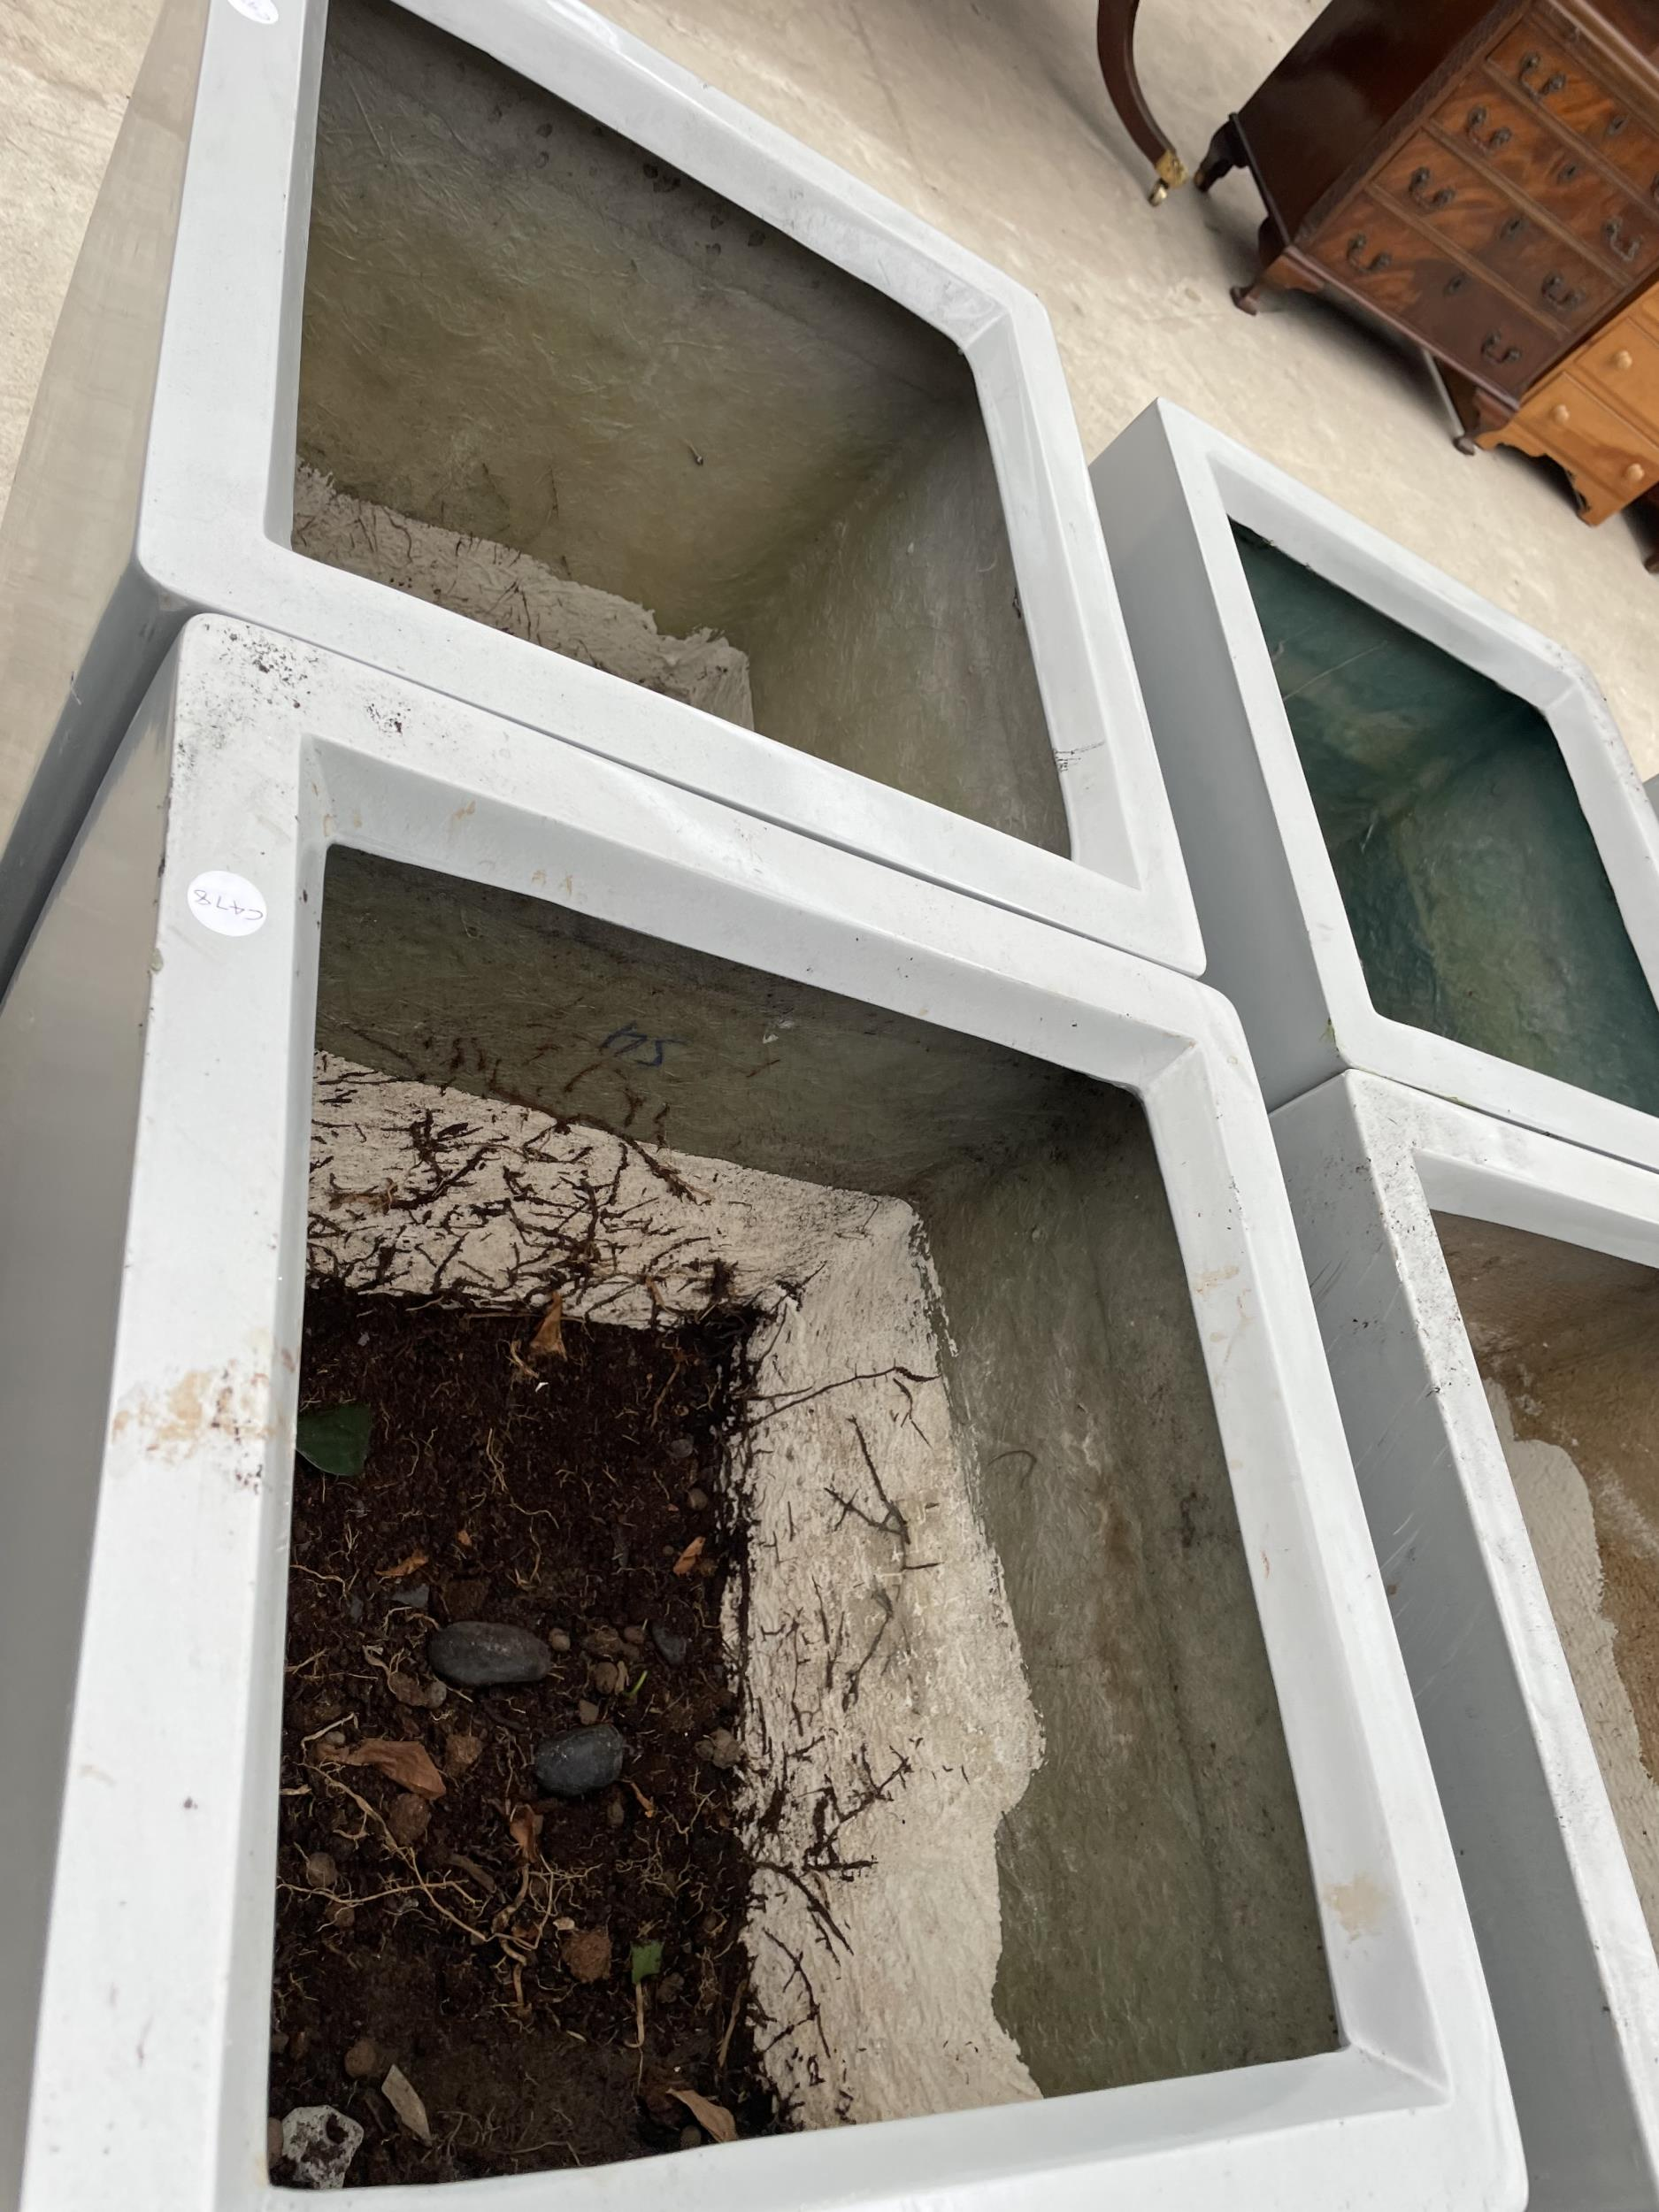 TWO LARGE GREY PLASTIC PLANTERS - Image 2 of 3